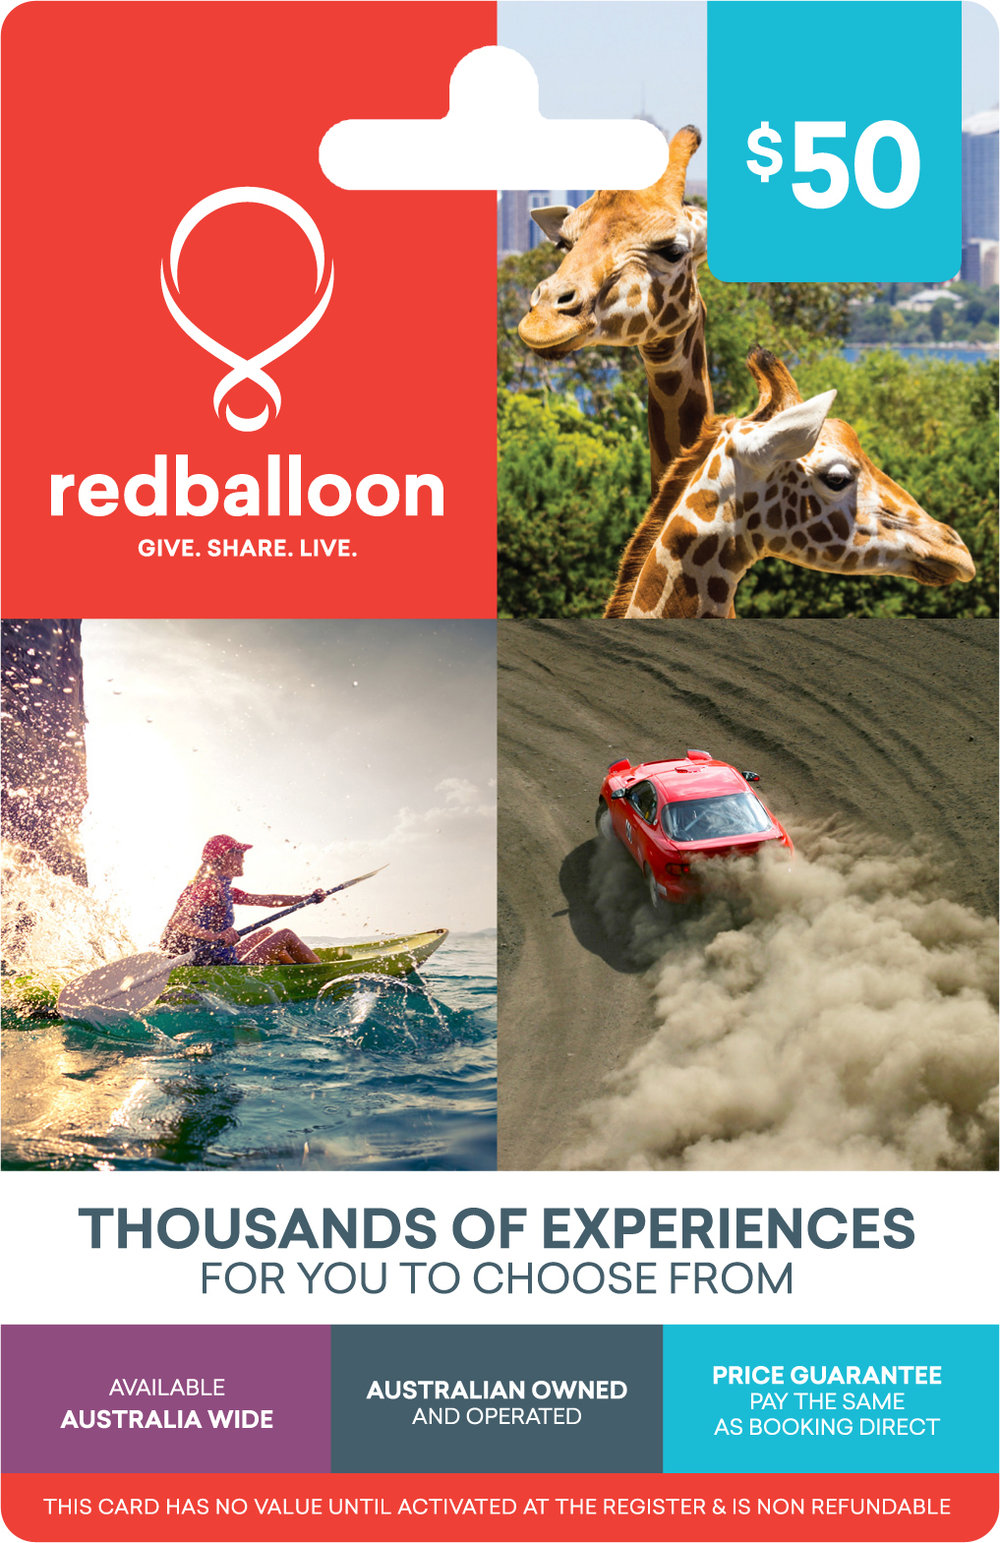 REDBALLOONgiftcard-aohc-50.jpg